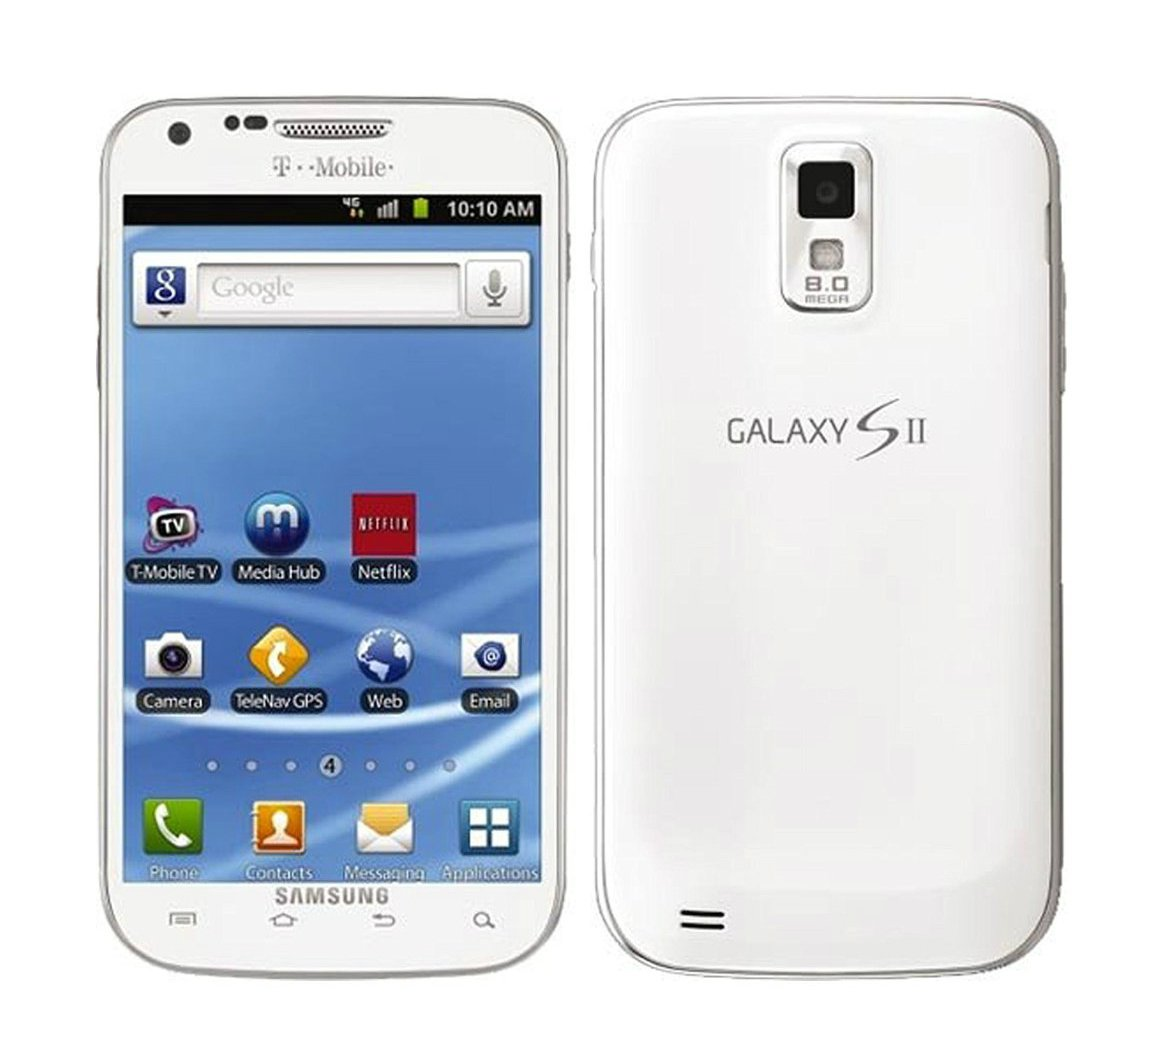 white samsung galaxy phones. amazon.com: samsung sgh-t989 galaxy s ii 16gb white android phone - t-mobile: cell phones \u0026 accessories